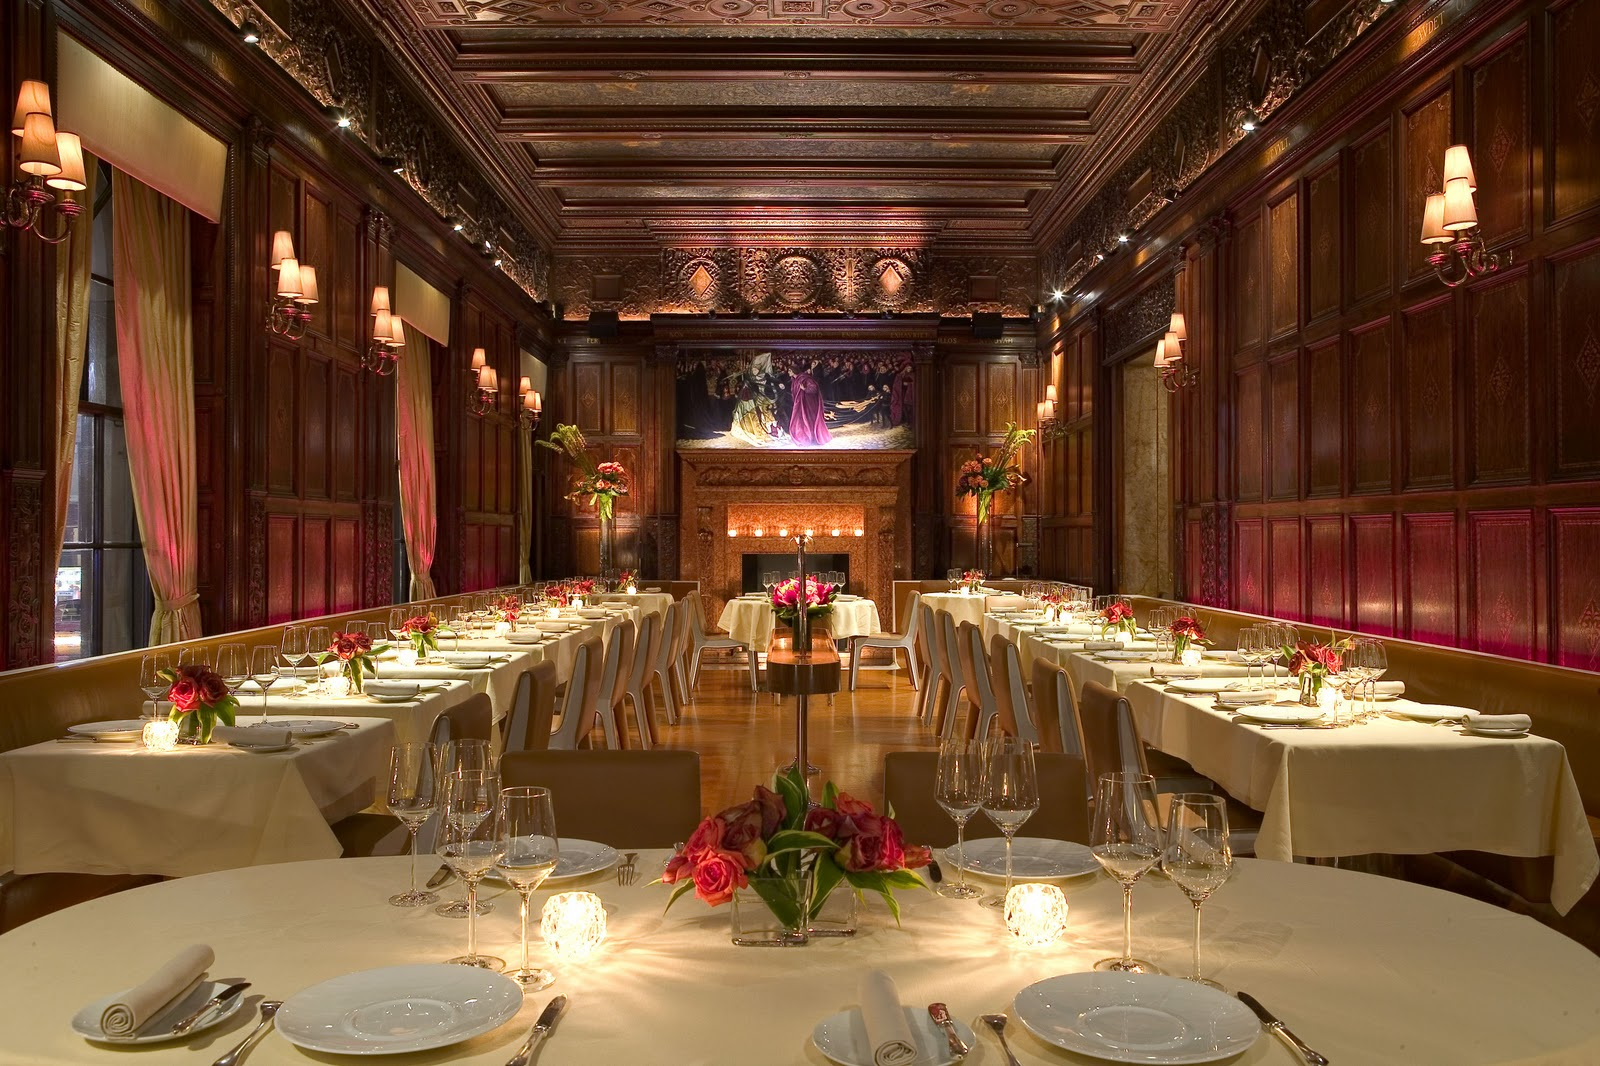 The new york palace fit for two kings dining duo